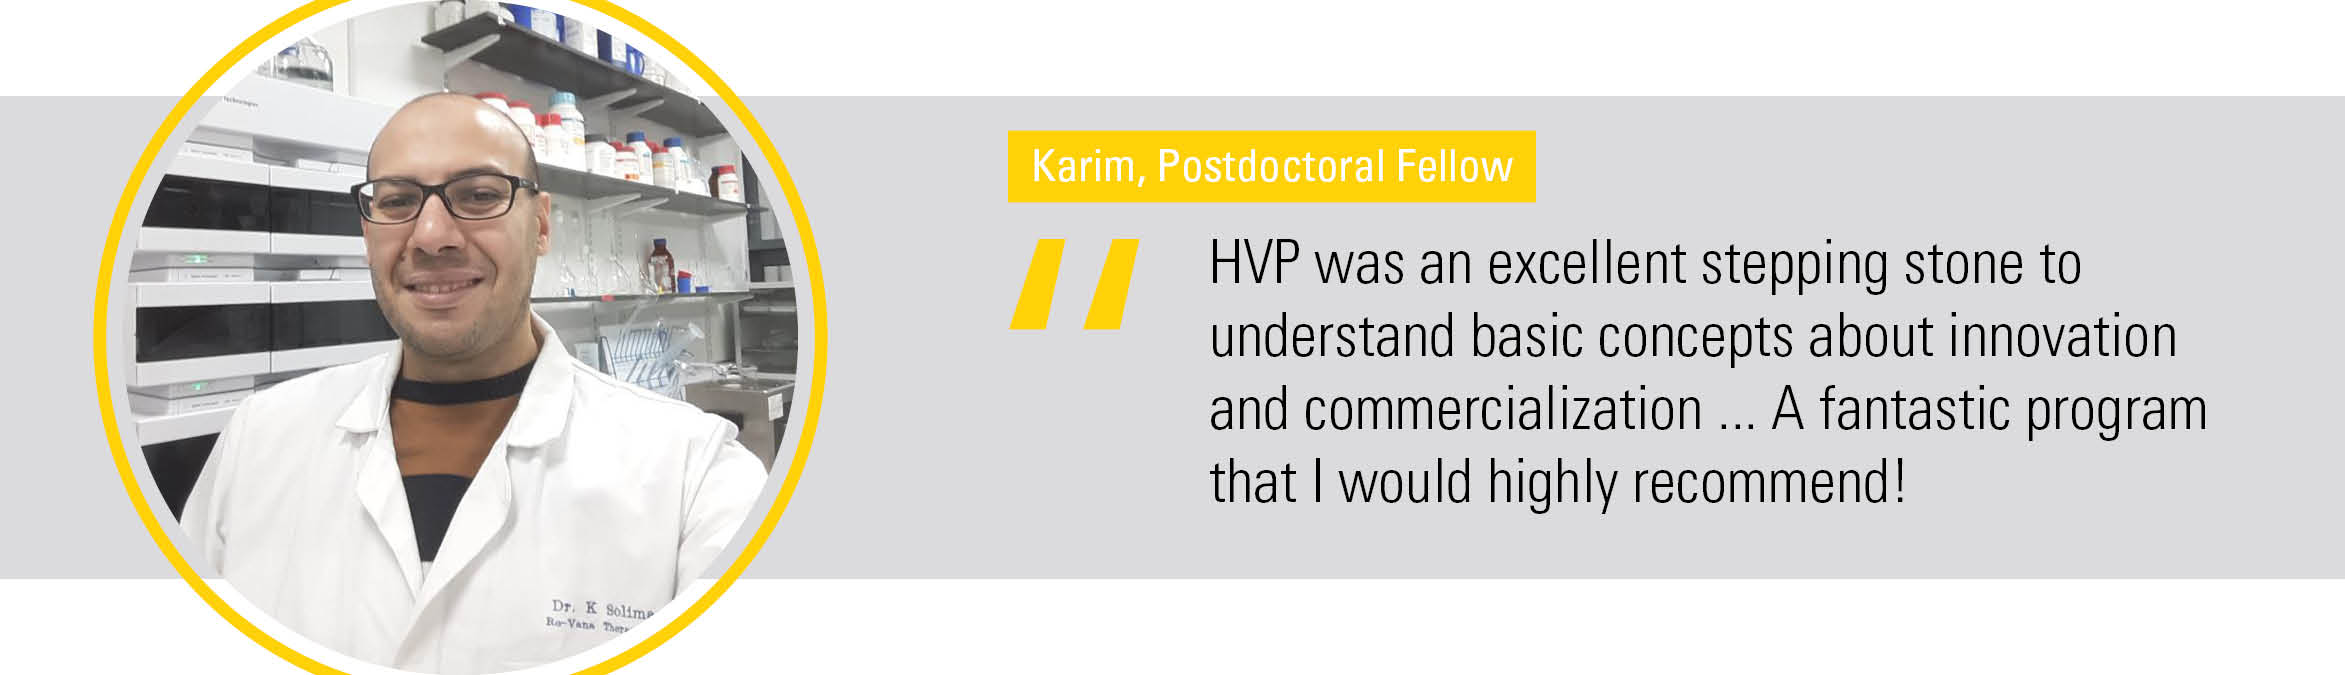 """""""HVP was an excellent stepping stone to  understand basic concepts about innovation and commercialization ... A fantastic program that I would highly recommend!"""""""